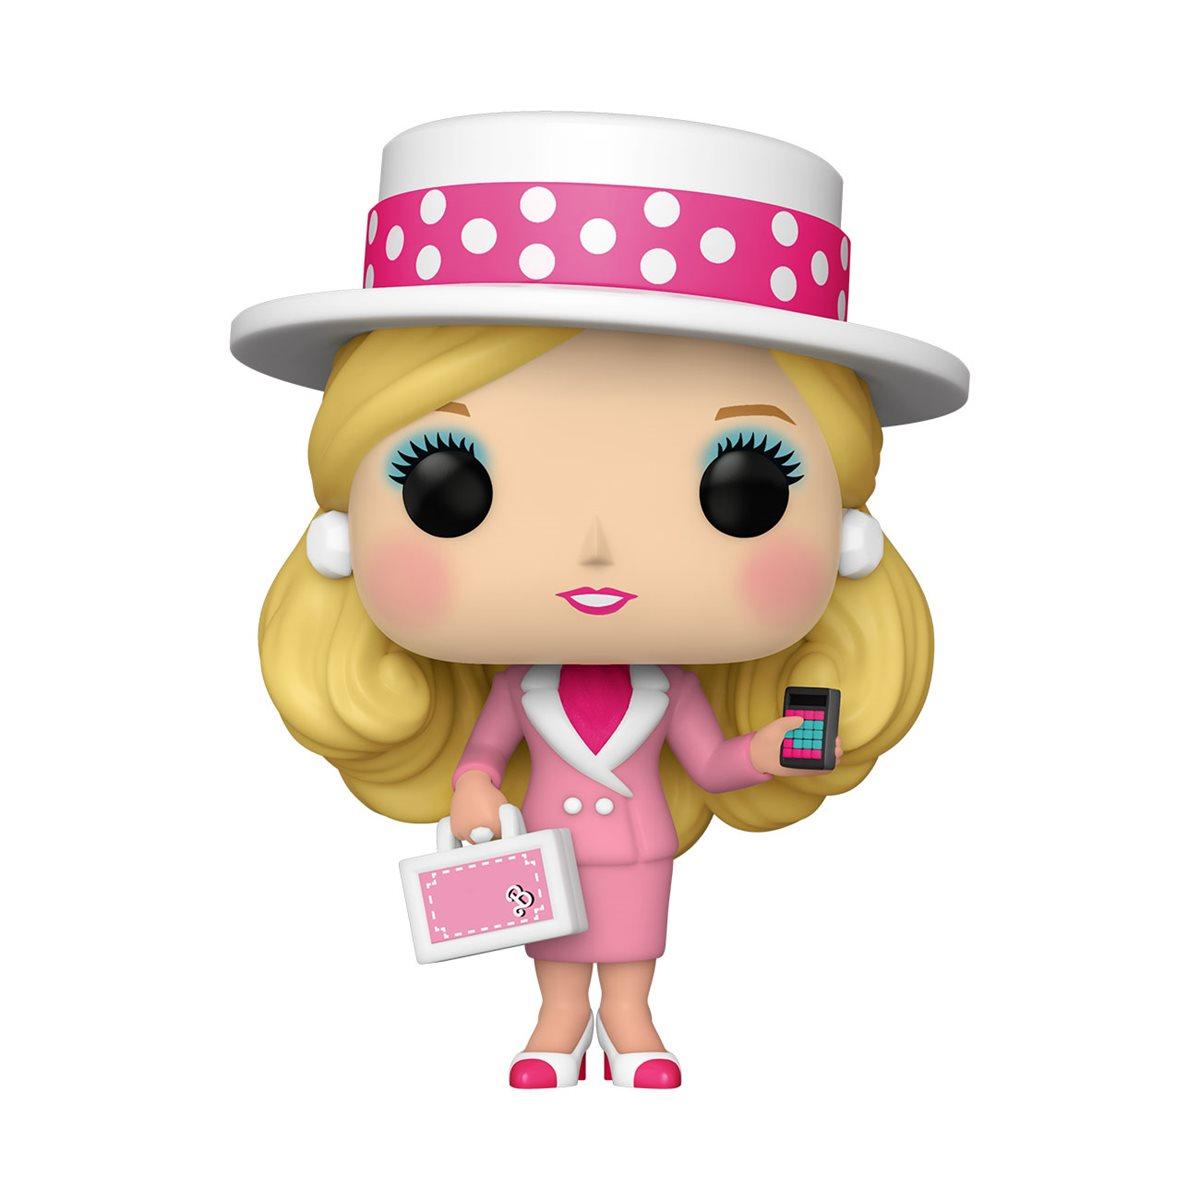 Barbie Business Barbie (November Preorder)